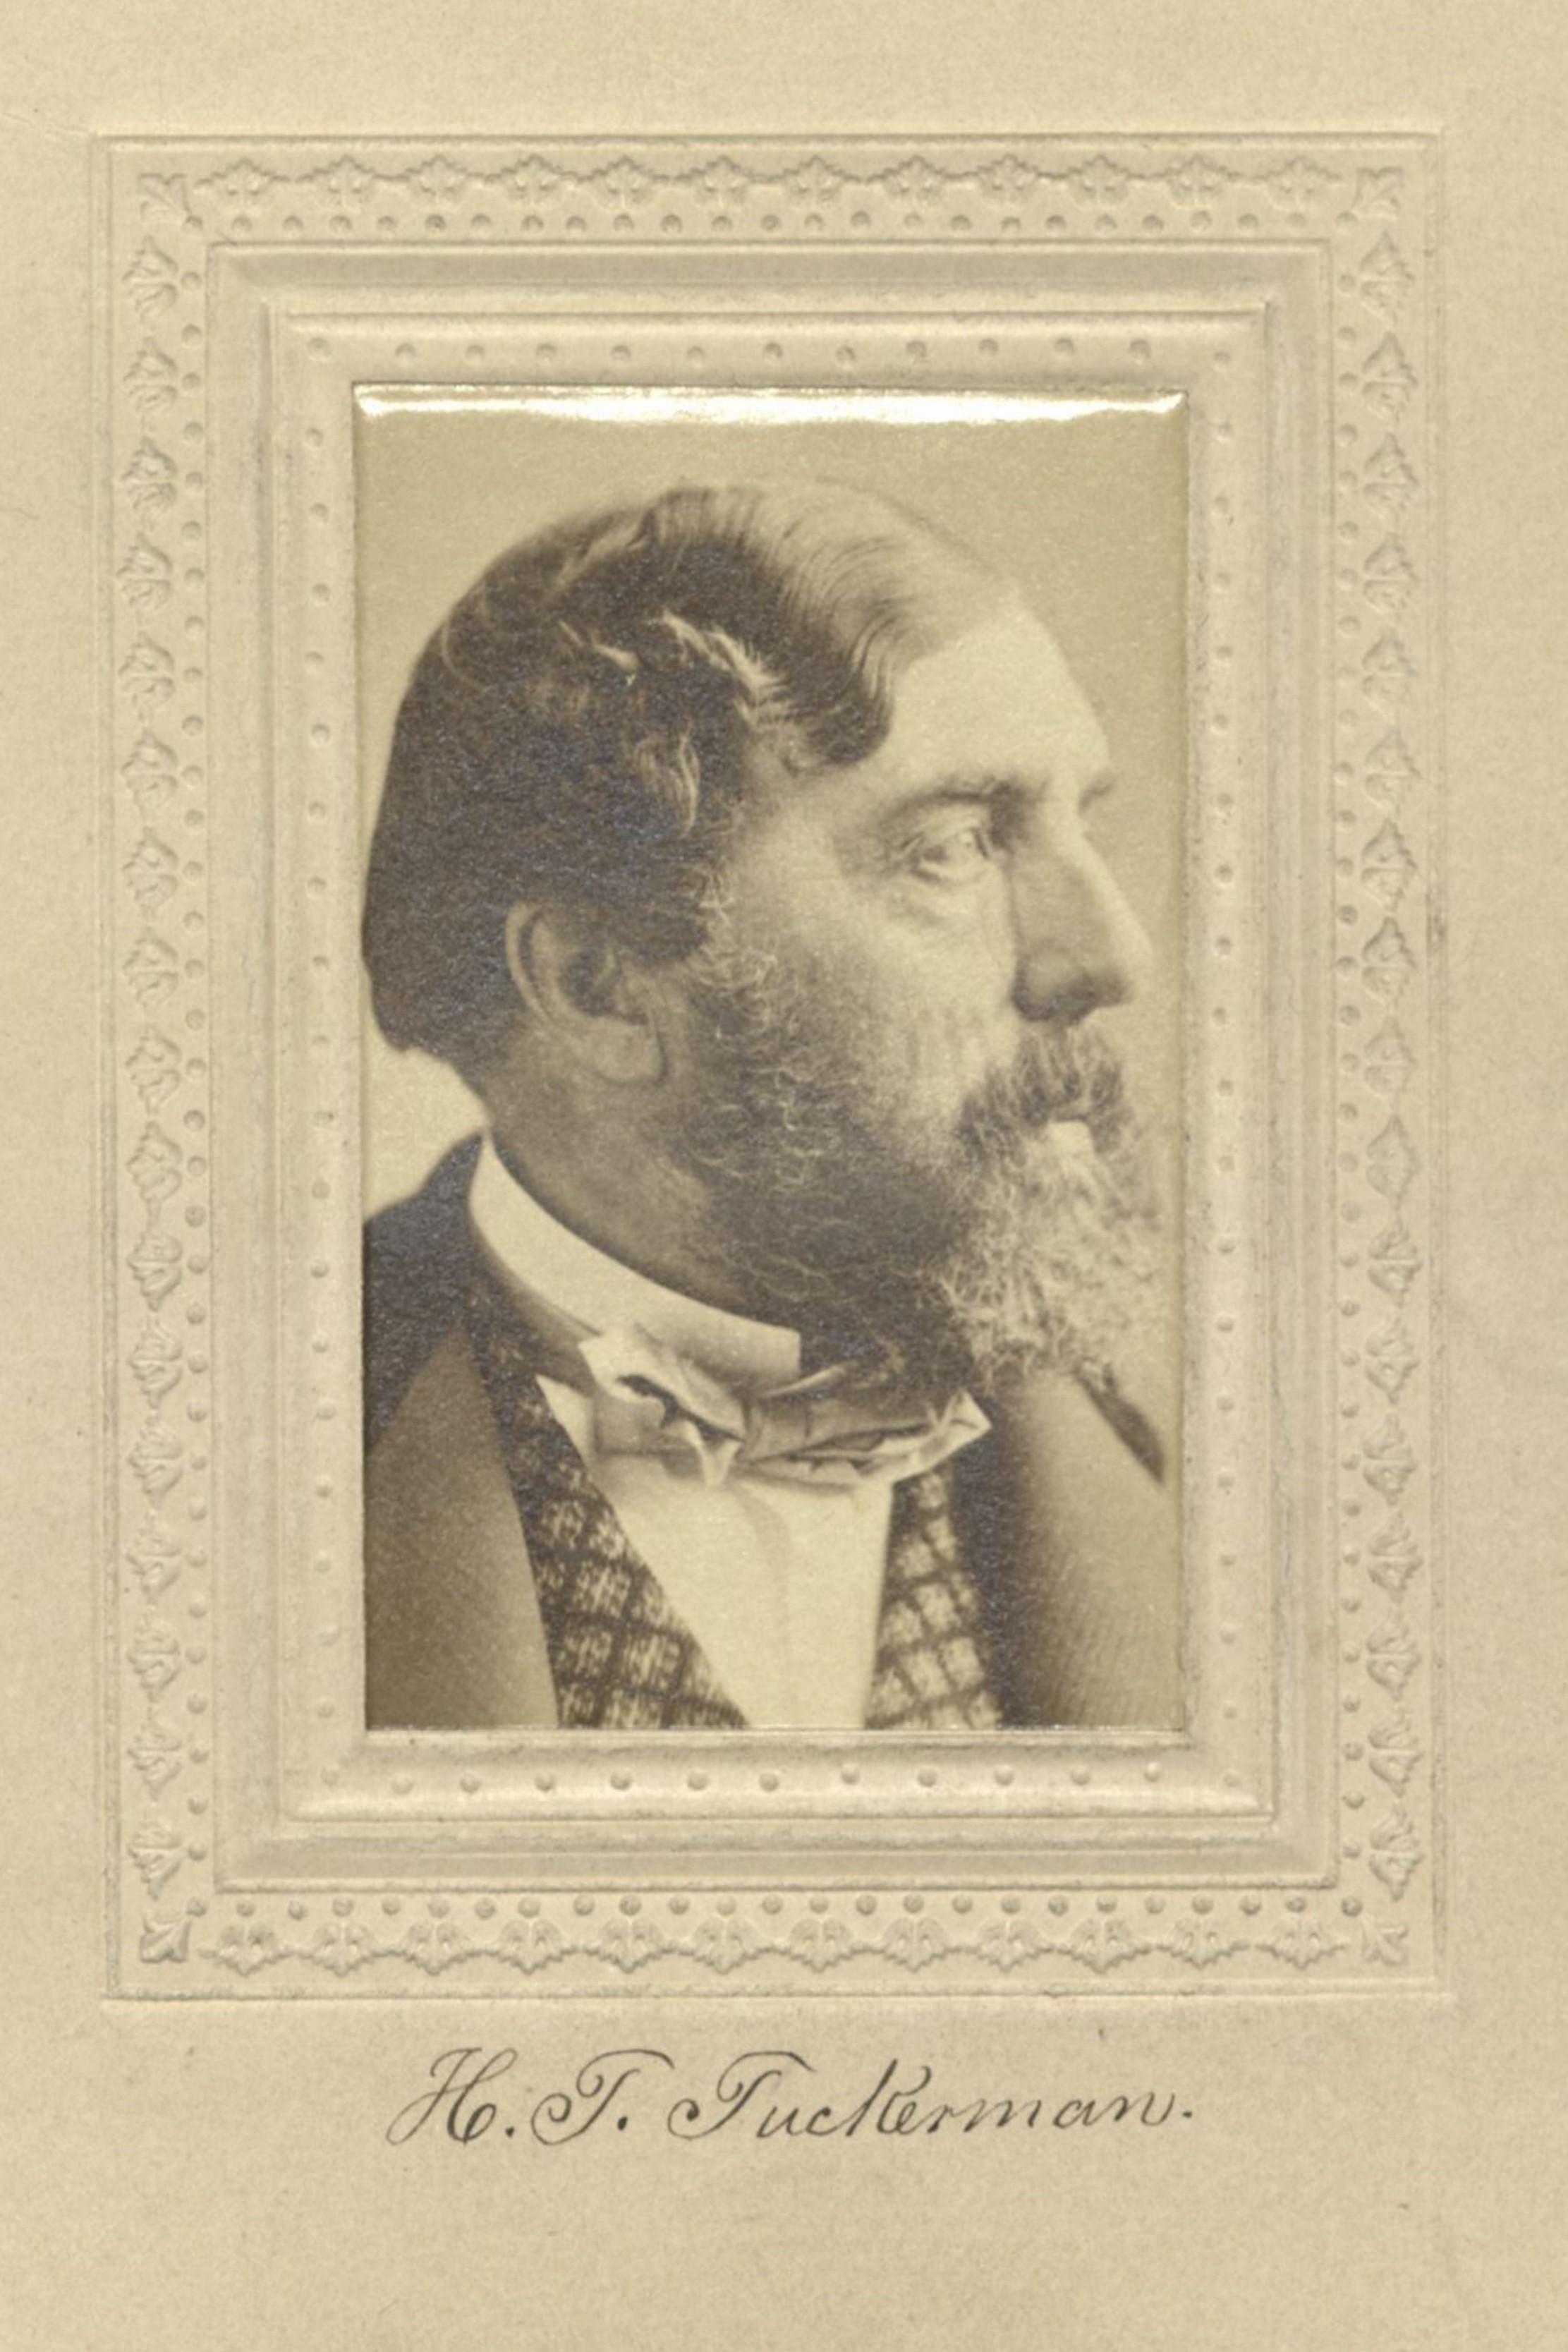 Member portrait of H. T. Tuckerman